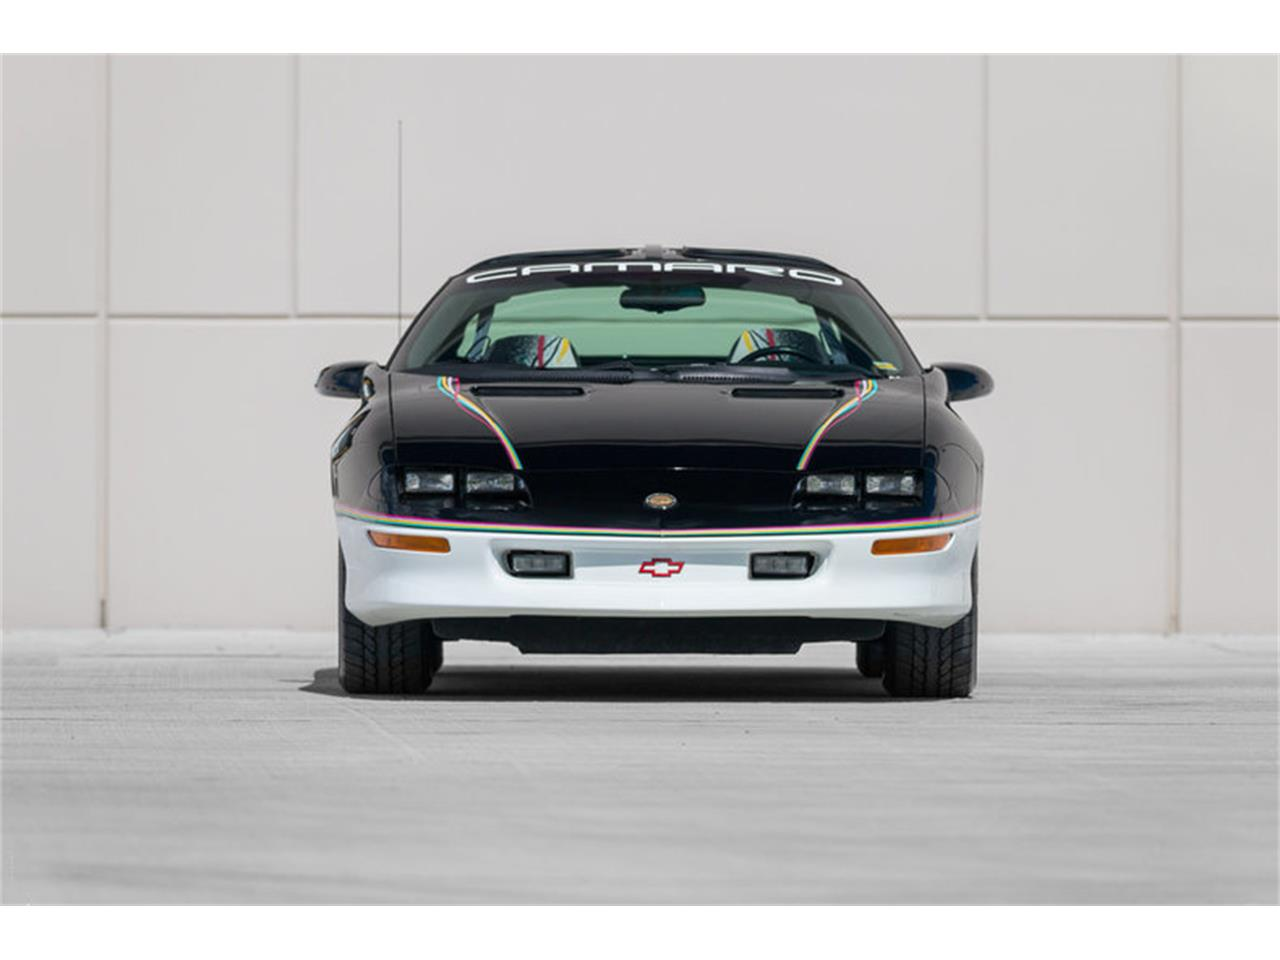 Large Picture of '93 Camaro located in St. Charles Missouri - $15,500.00 - LAVL